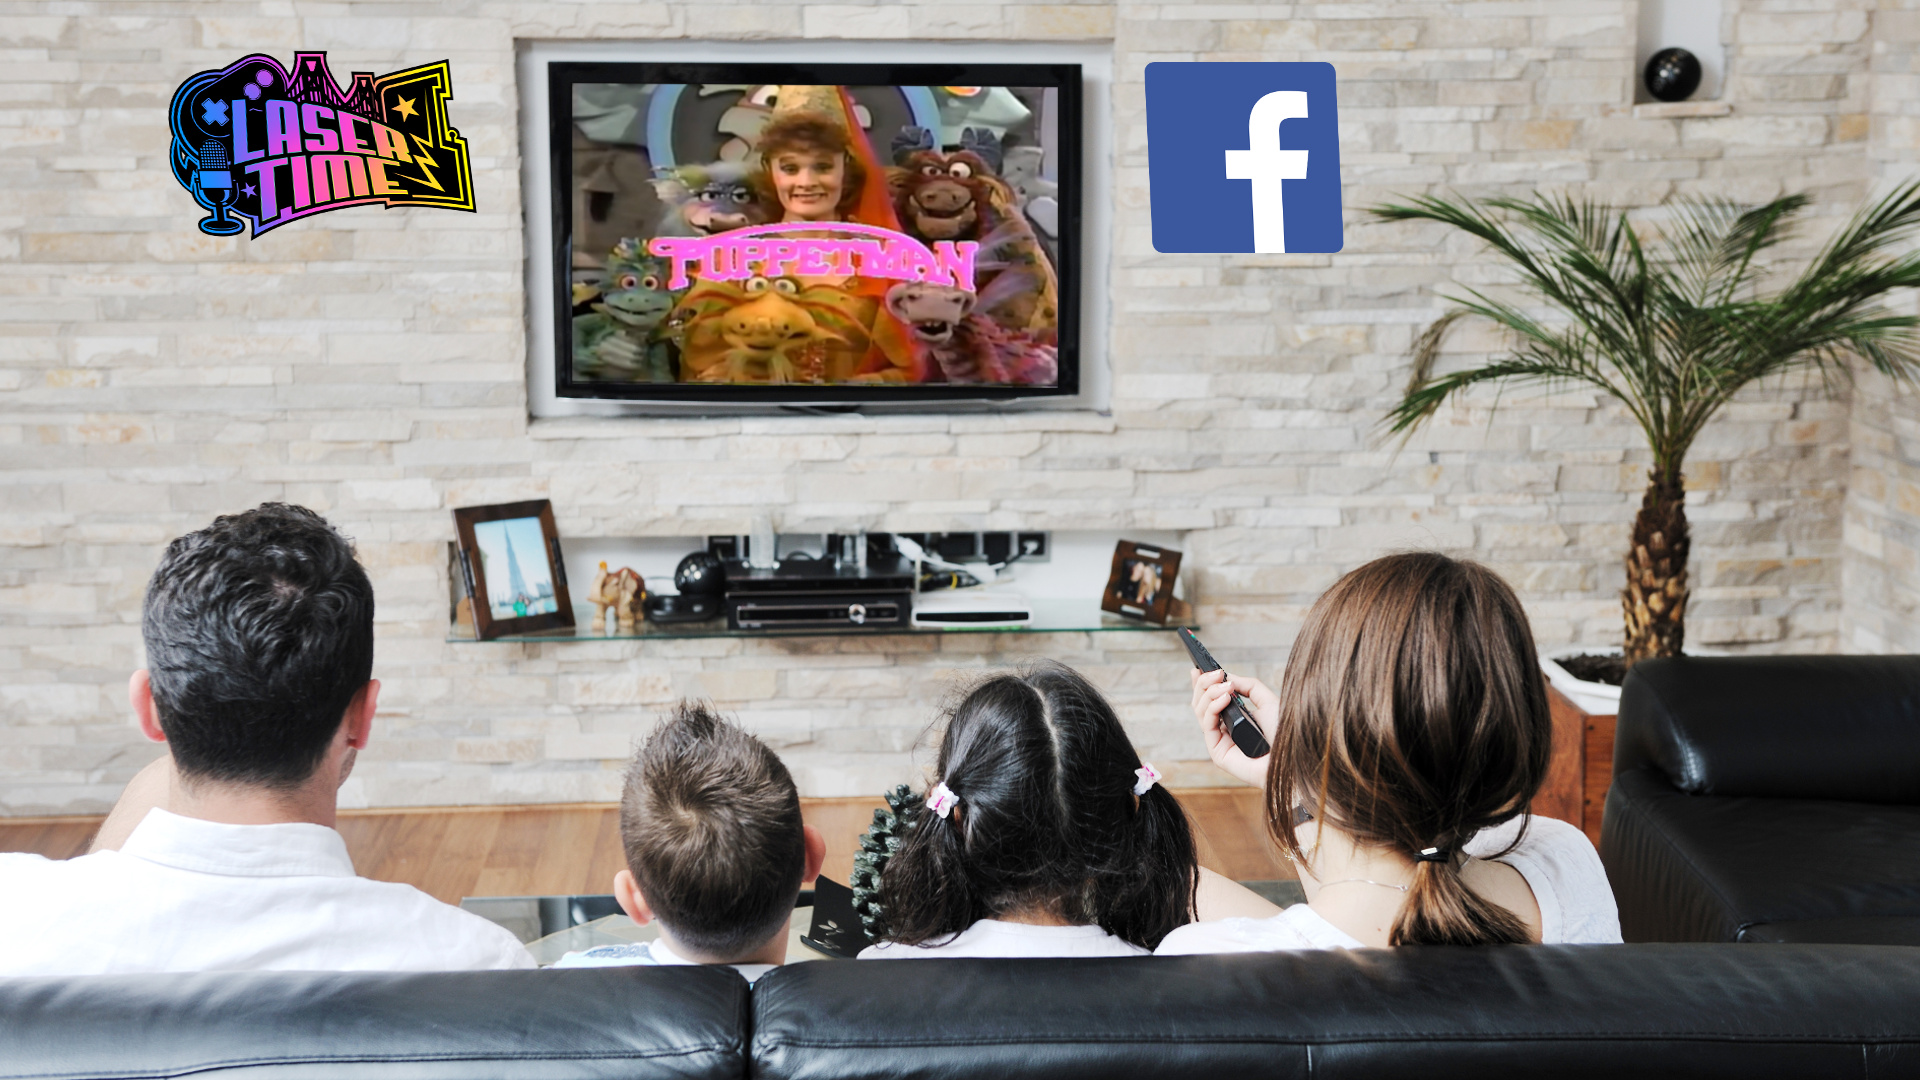 laser time, facebook community, unaired pilots, tv shows, poochinksi, action family, puppetman